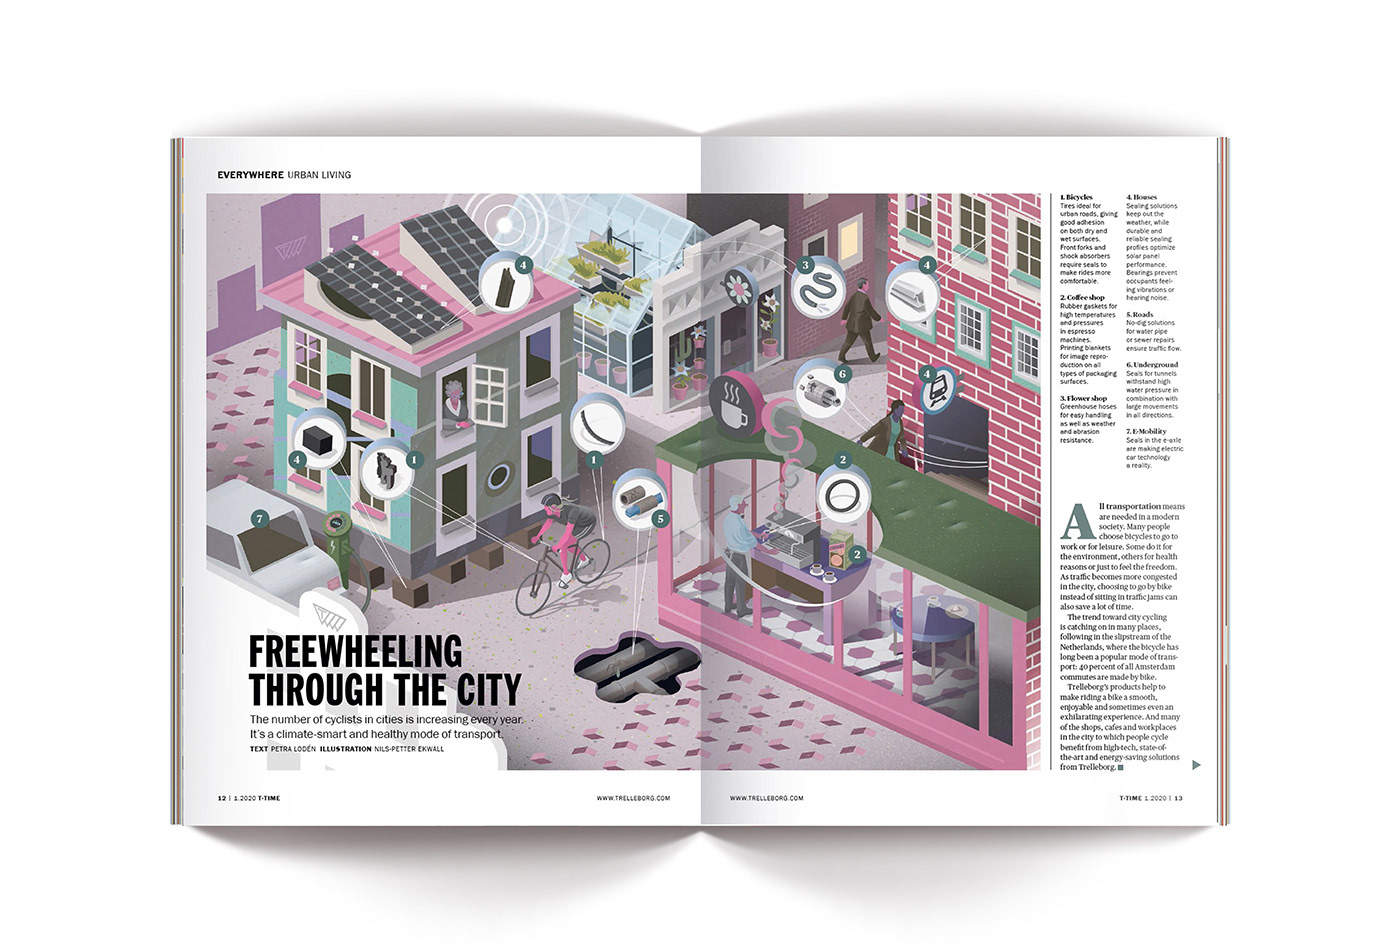 annual report brochure building city cityscape detail editorial industry infographic Isometric